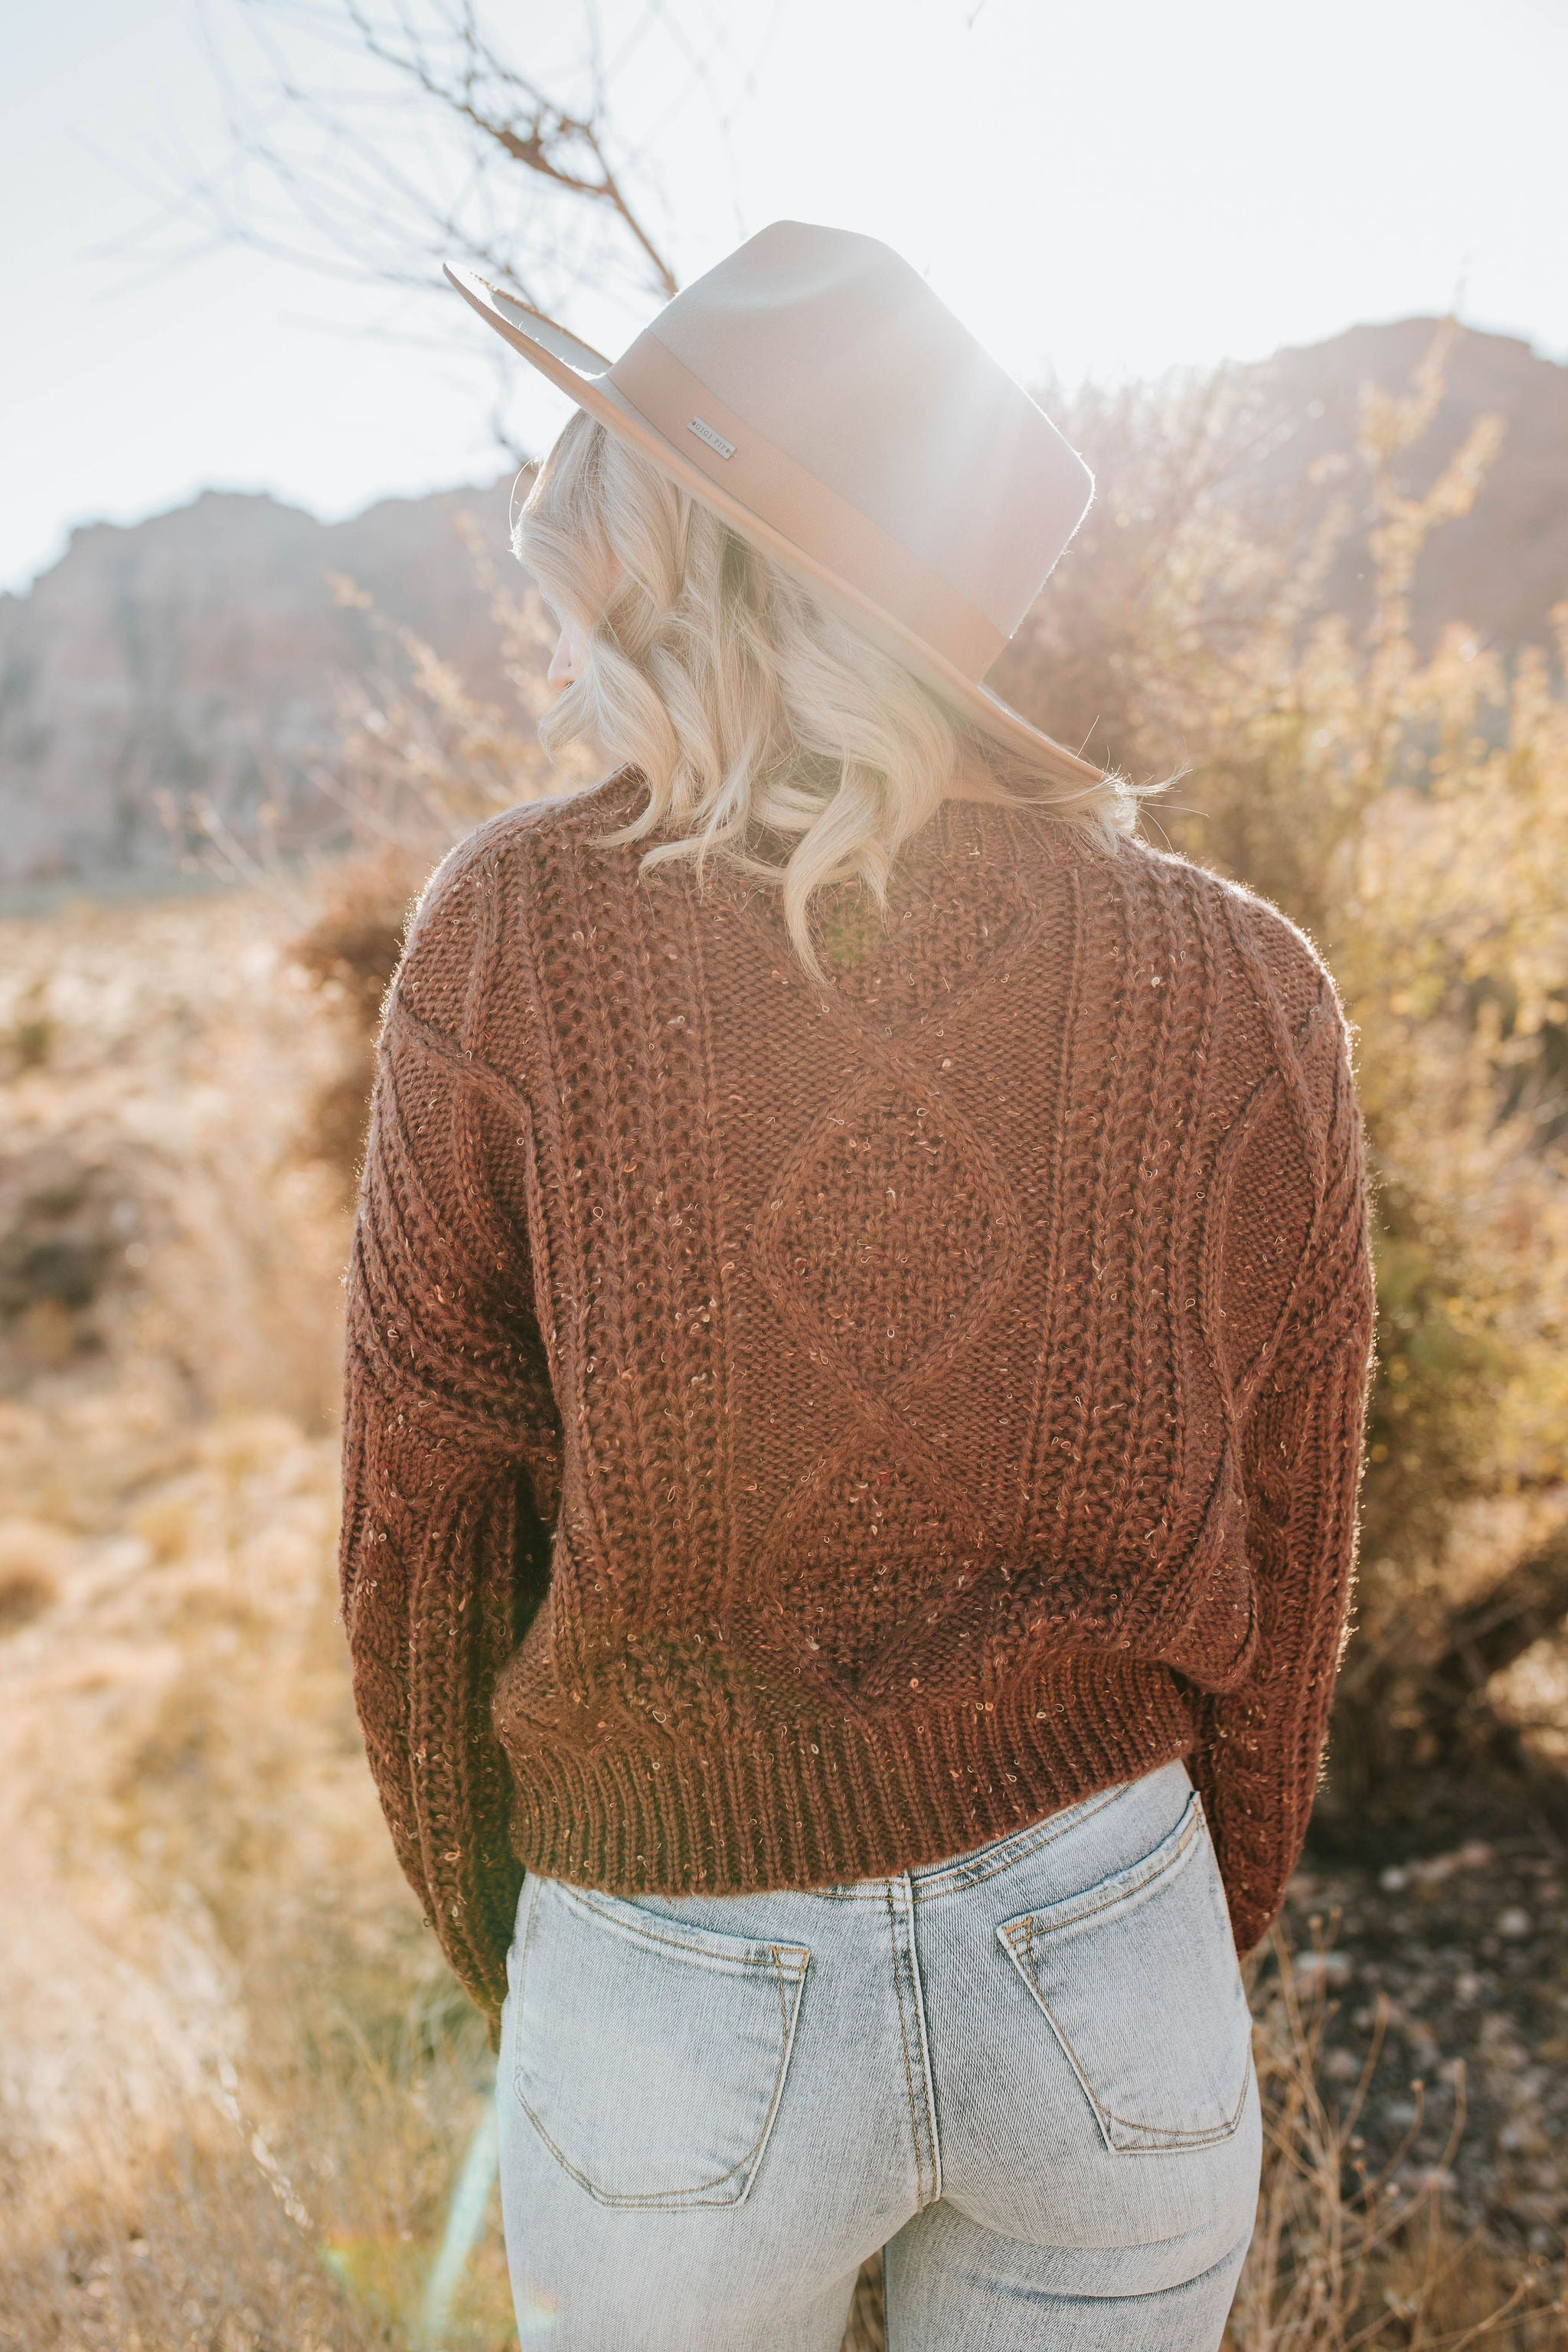 THE CADIE CABLE KNIT CROP SWEATER IN BROWN